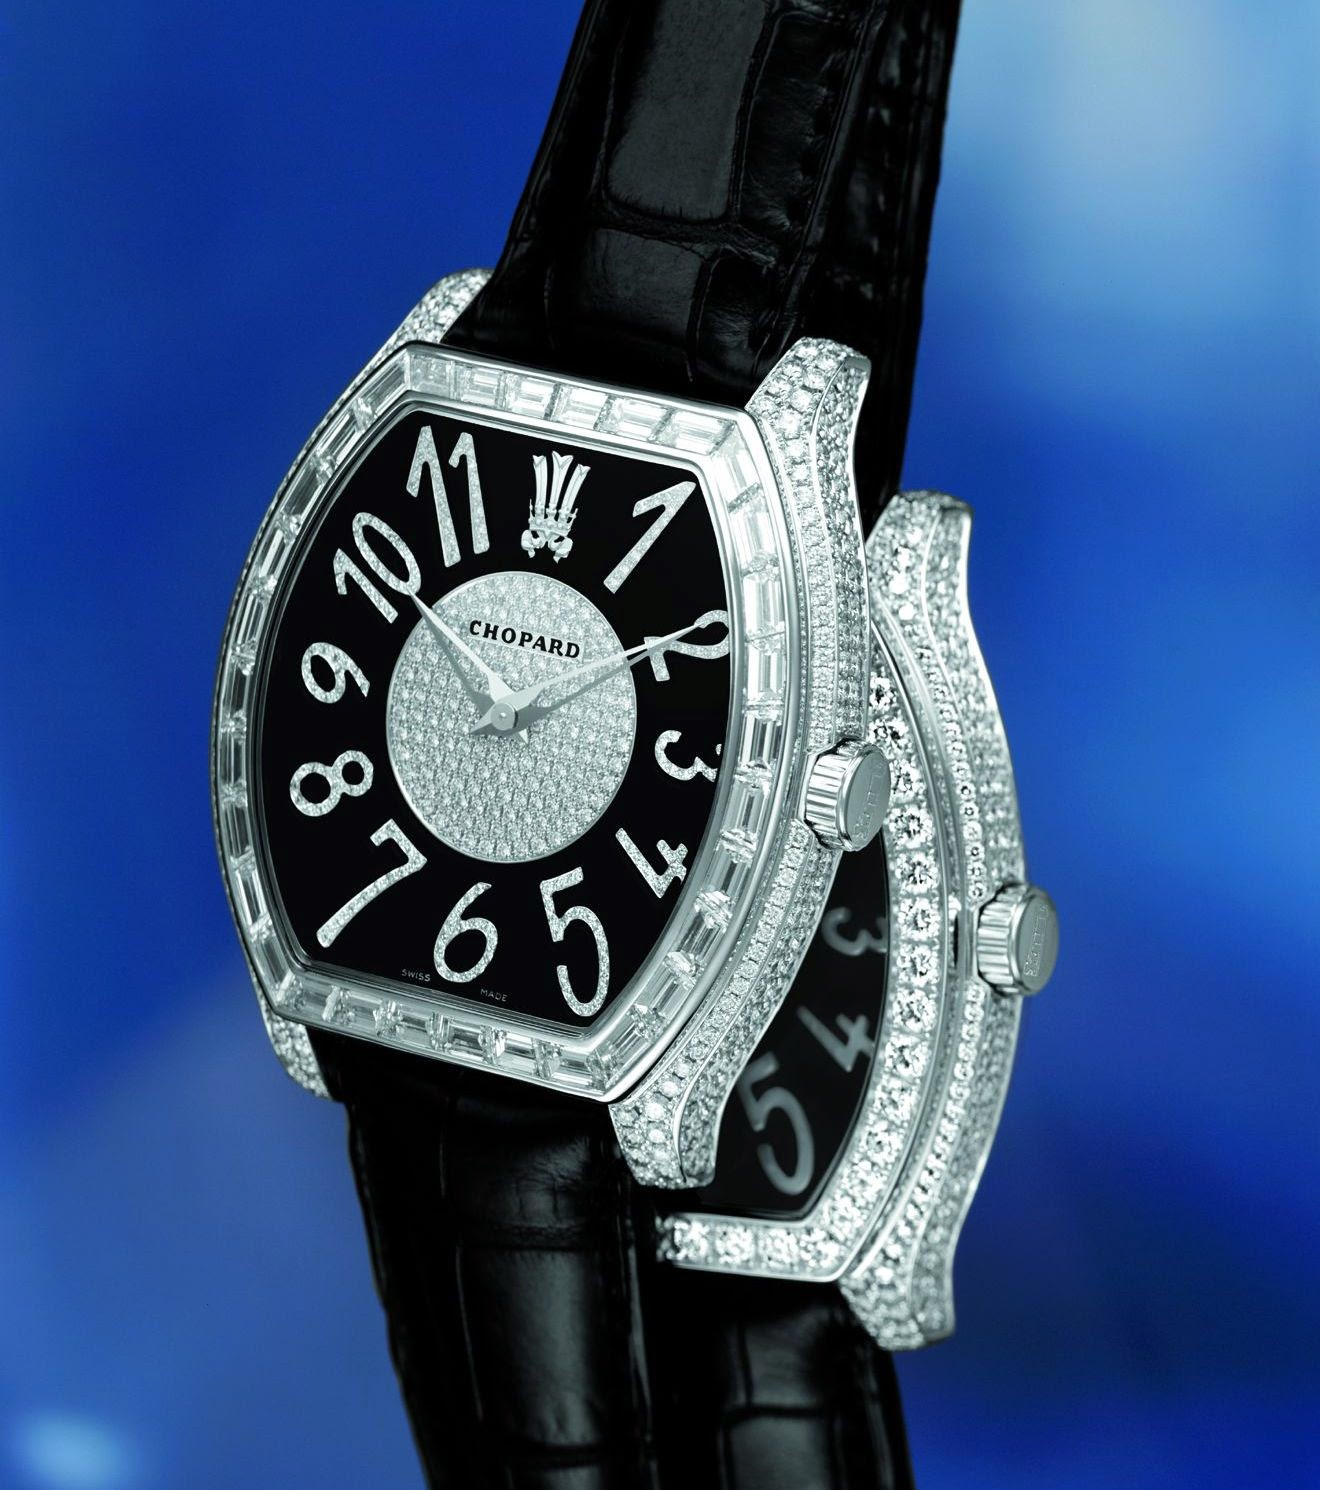 Chopard - The Prince Charles Watch